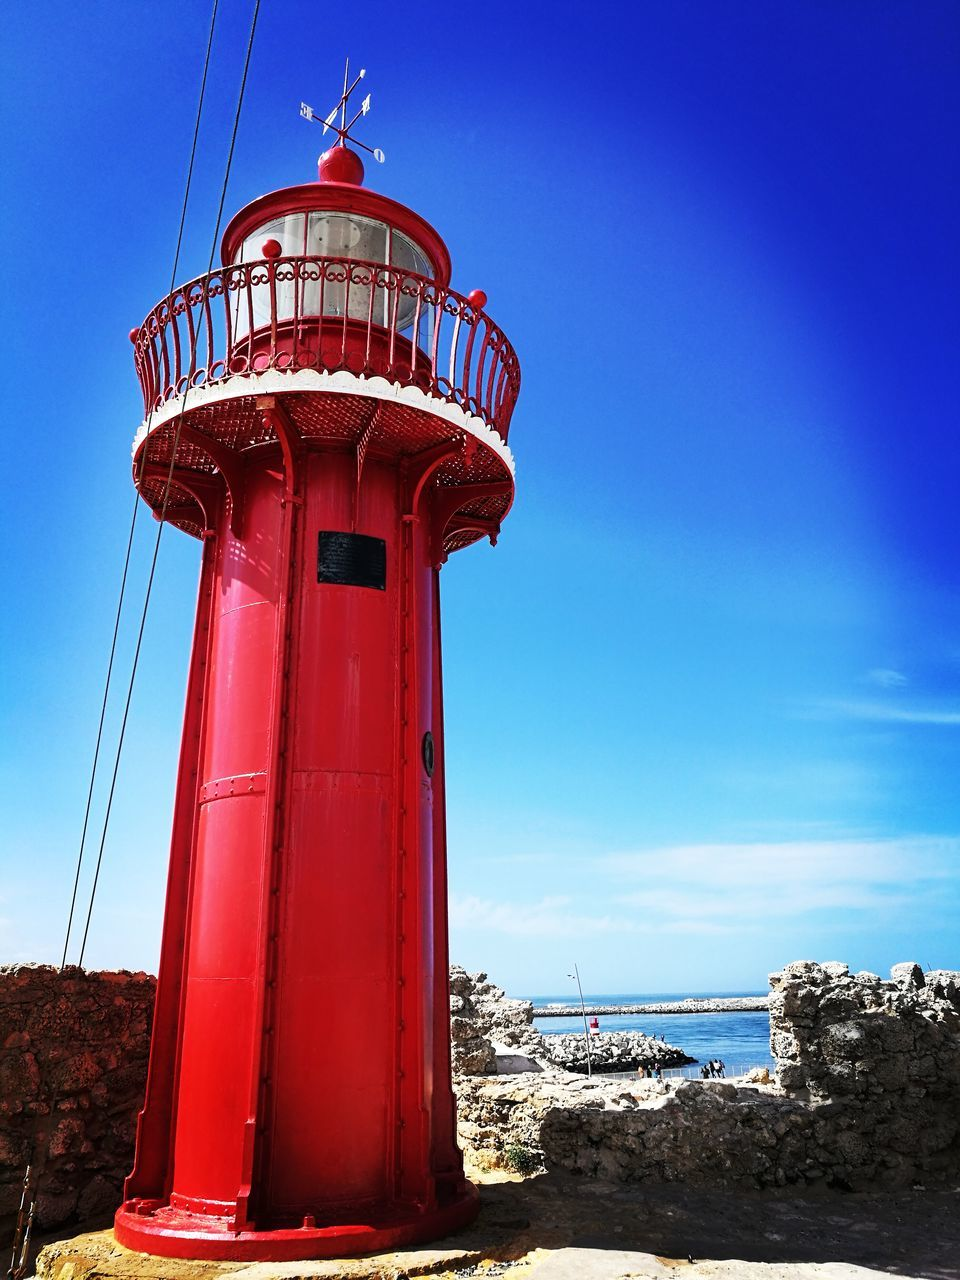 safety, protection, lighthouse, security, sky, guidance, day, architecture, direction, sea, red, built structure, no people, outdoors, blue, nature, lookout tower, building exterior, water